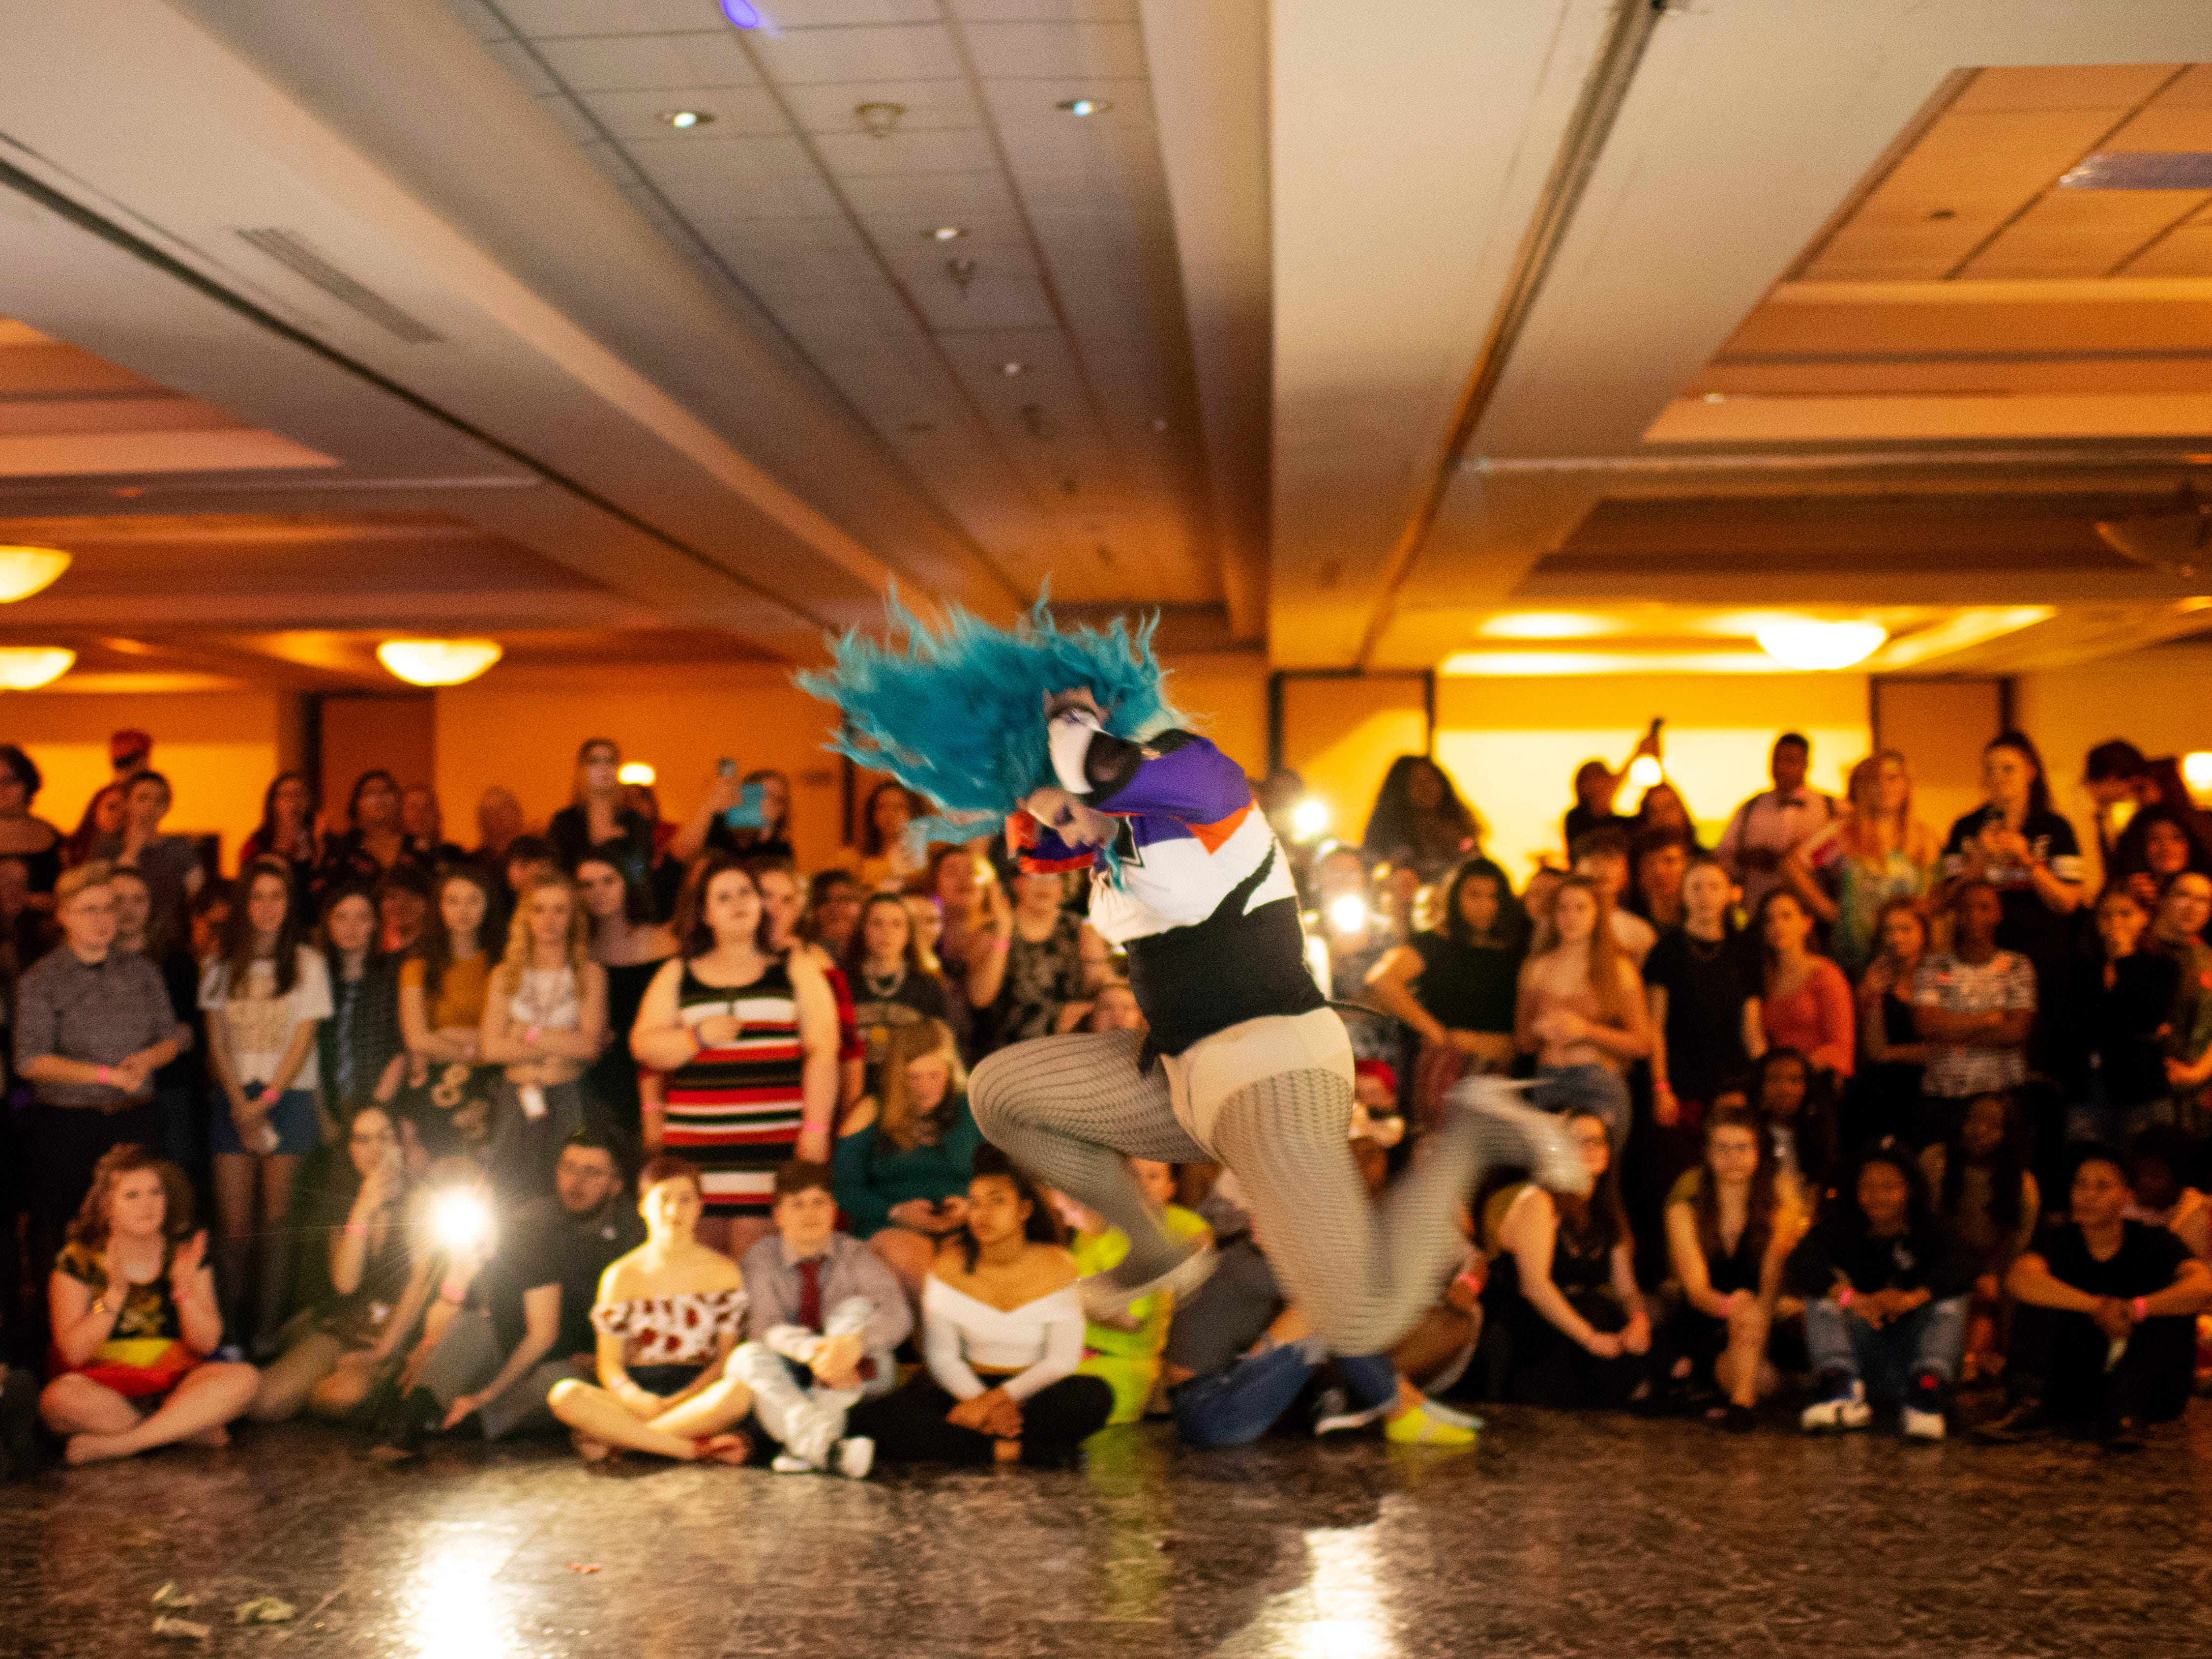 Amity Delite performs at the Tri-State Alliance Pride Prom at the Holiday Inn Saturday night.